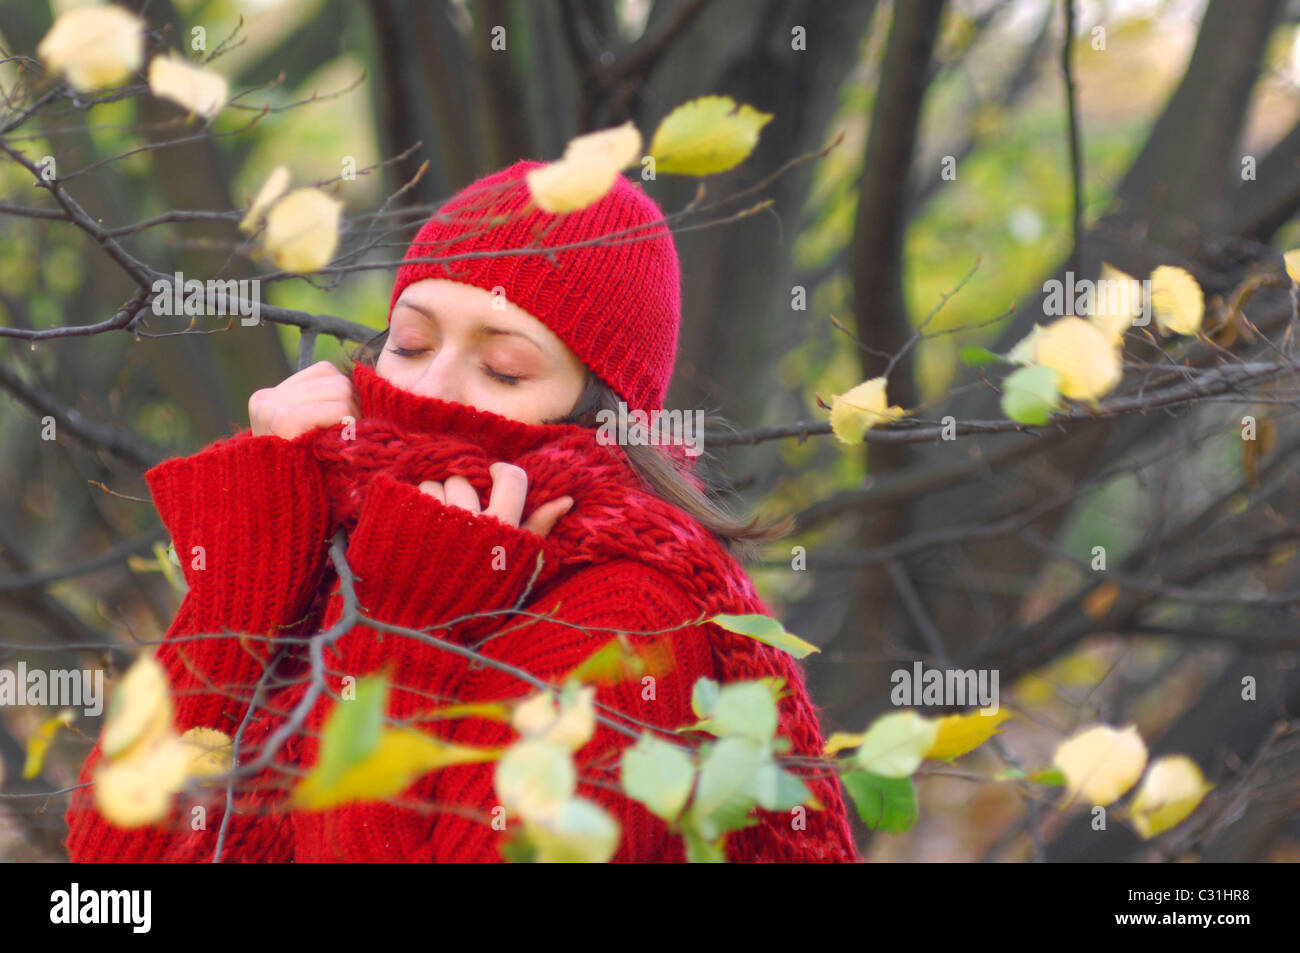 ALL MUFFLED UP, A YOUNG WOMAN REGENERATES HERSELF IN THE FOREST IN AUTUMN - Stock Image